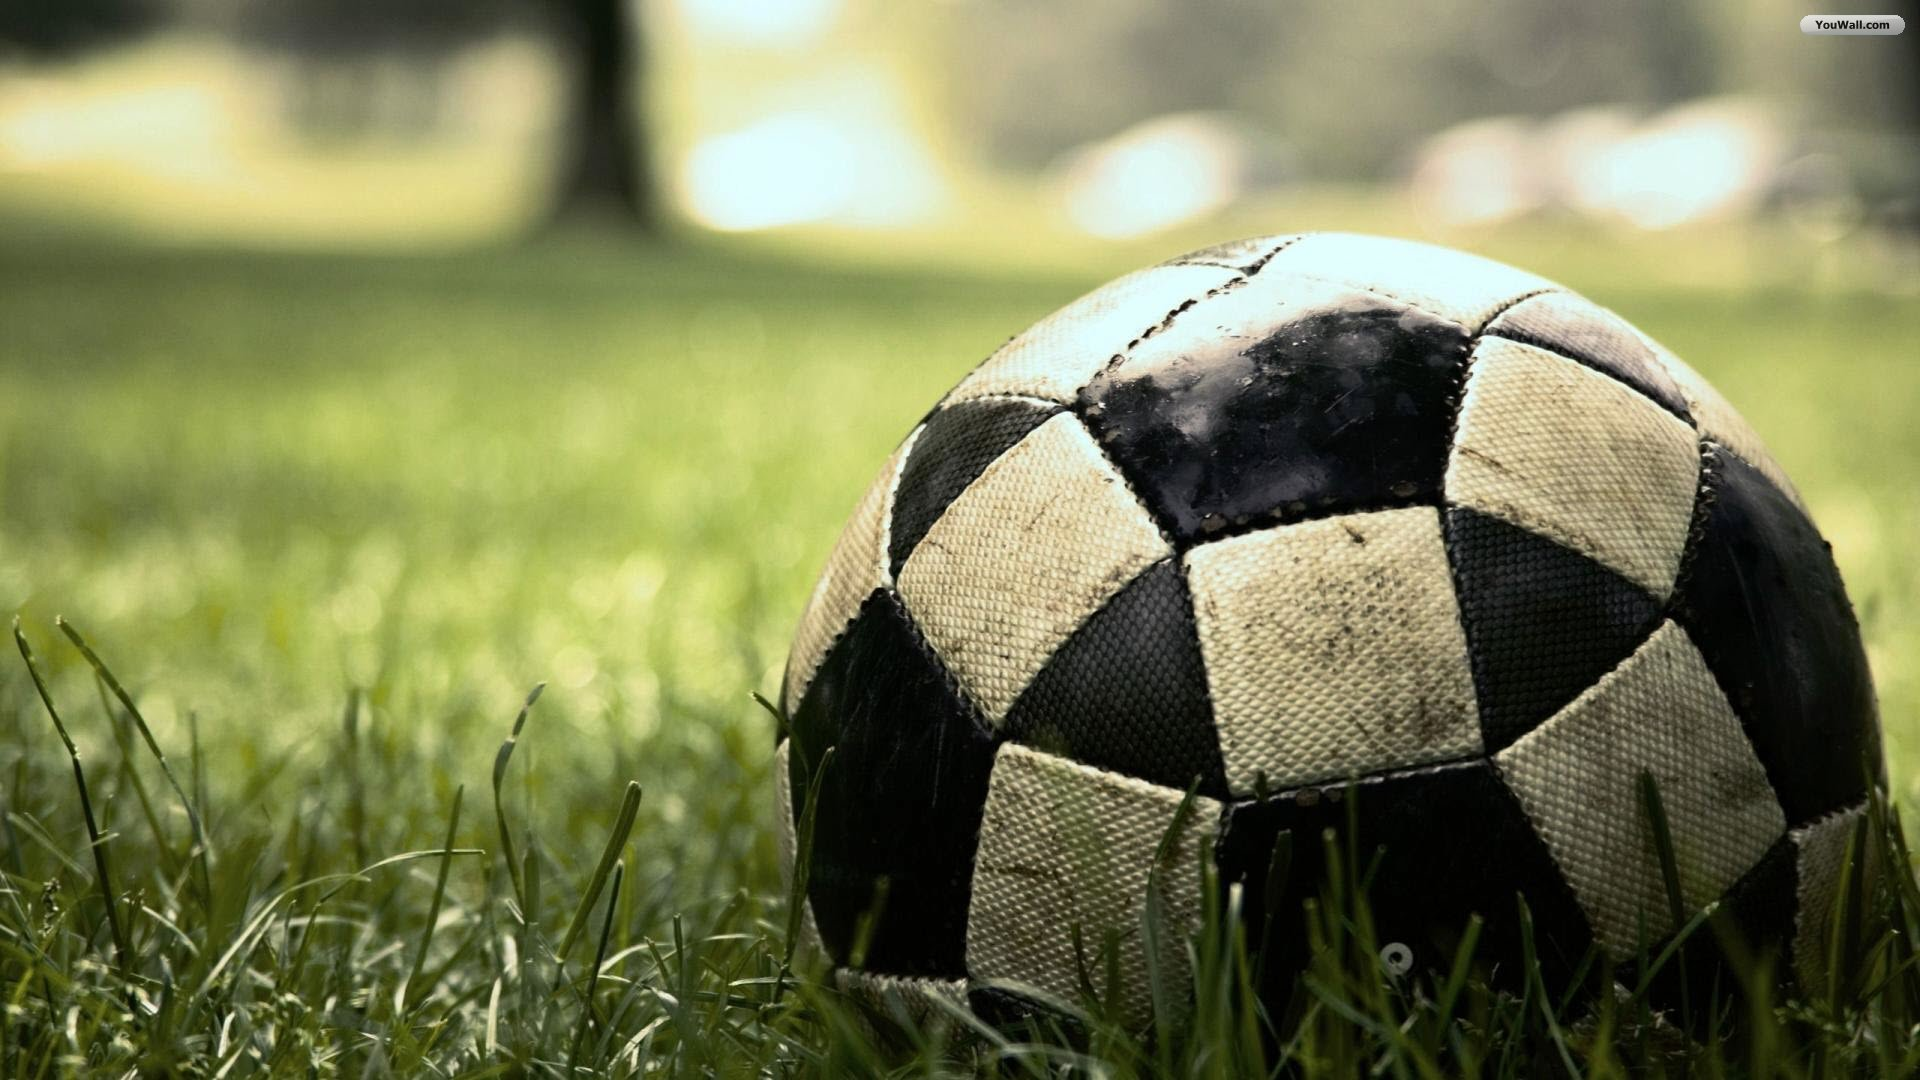 old-soccer-ball-wallpaper.jpg